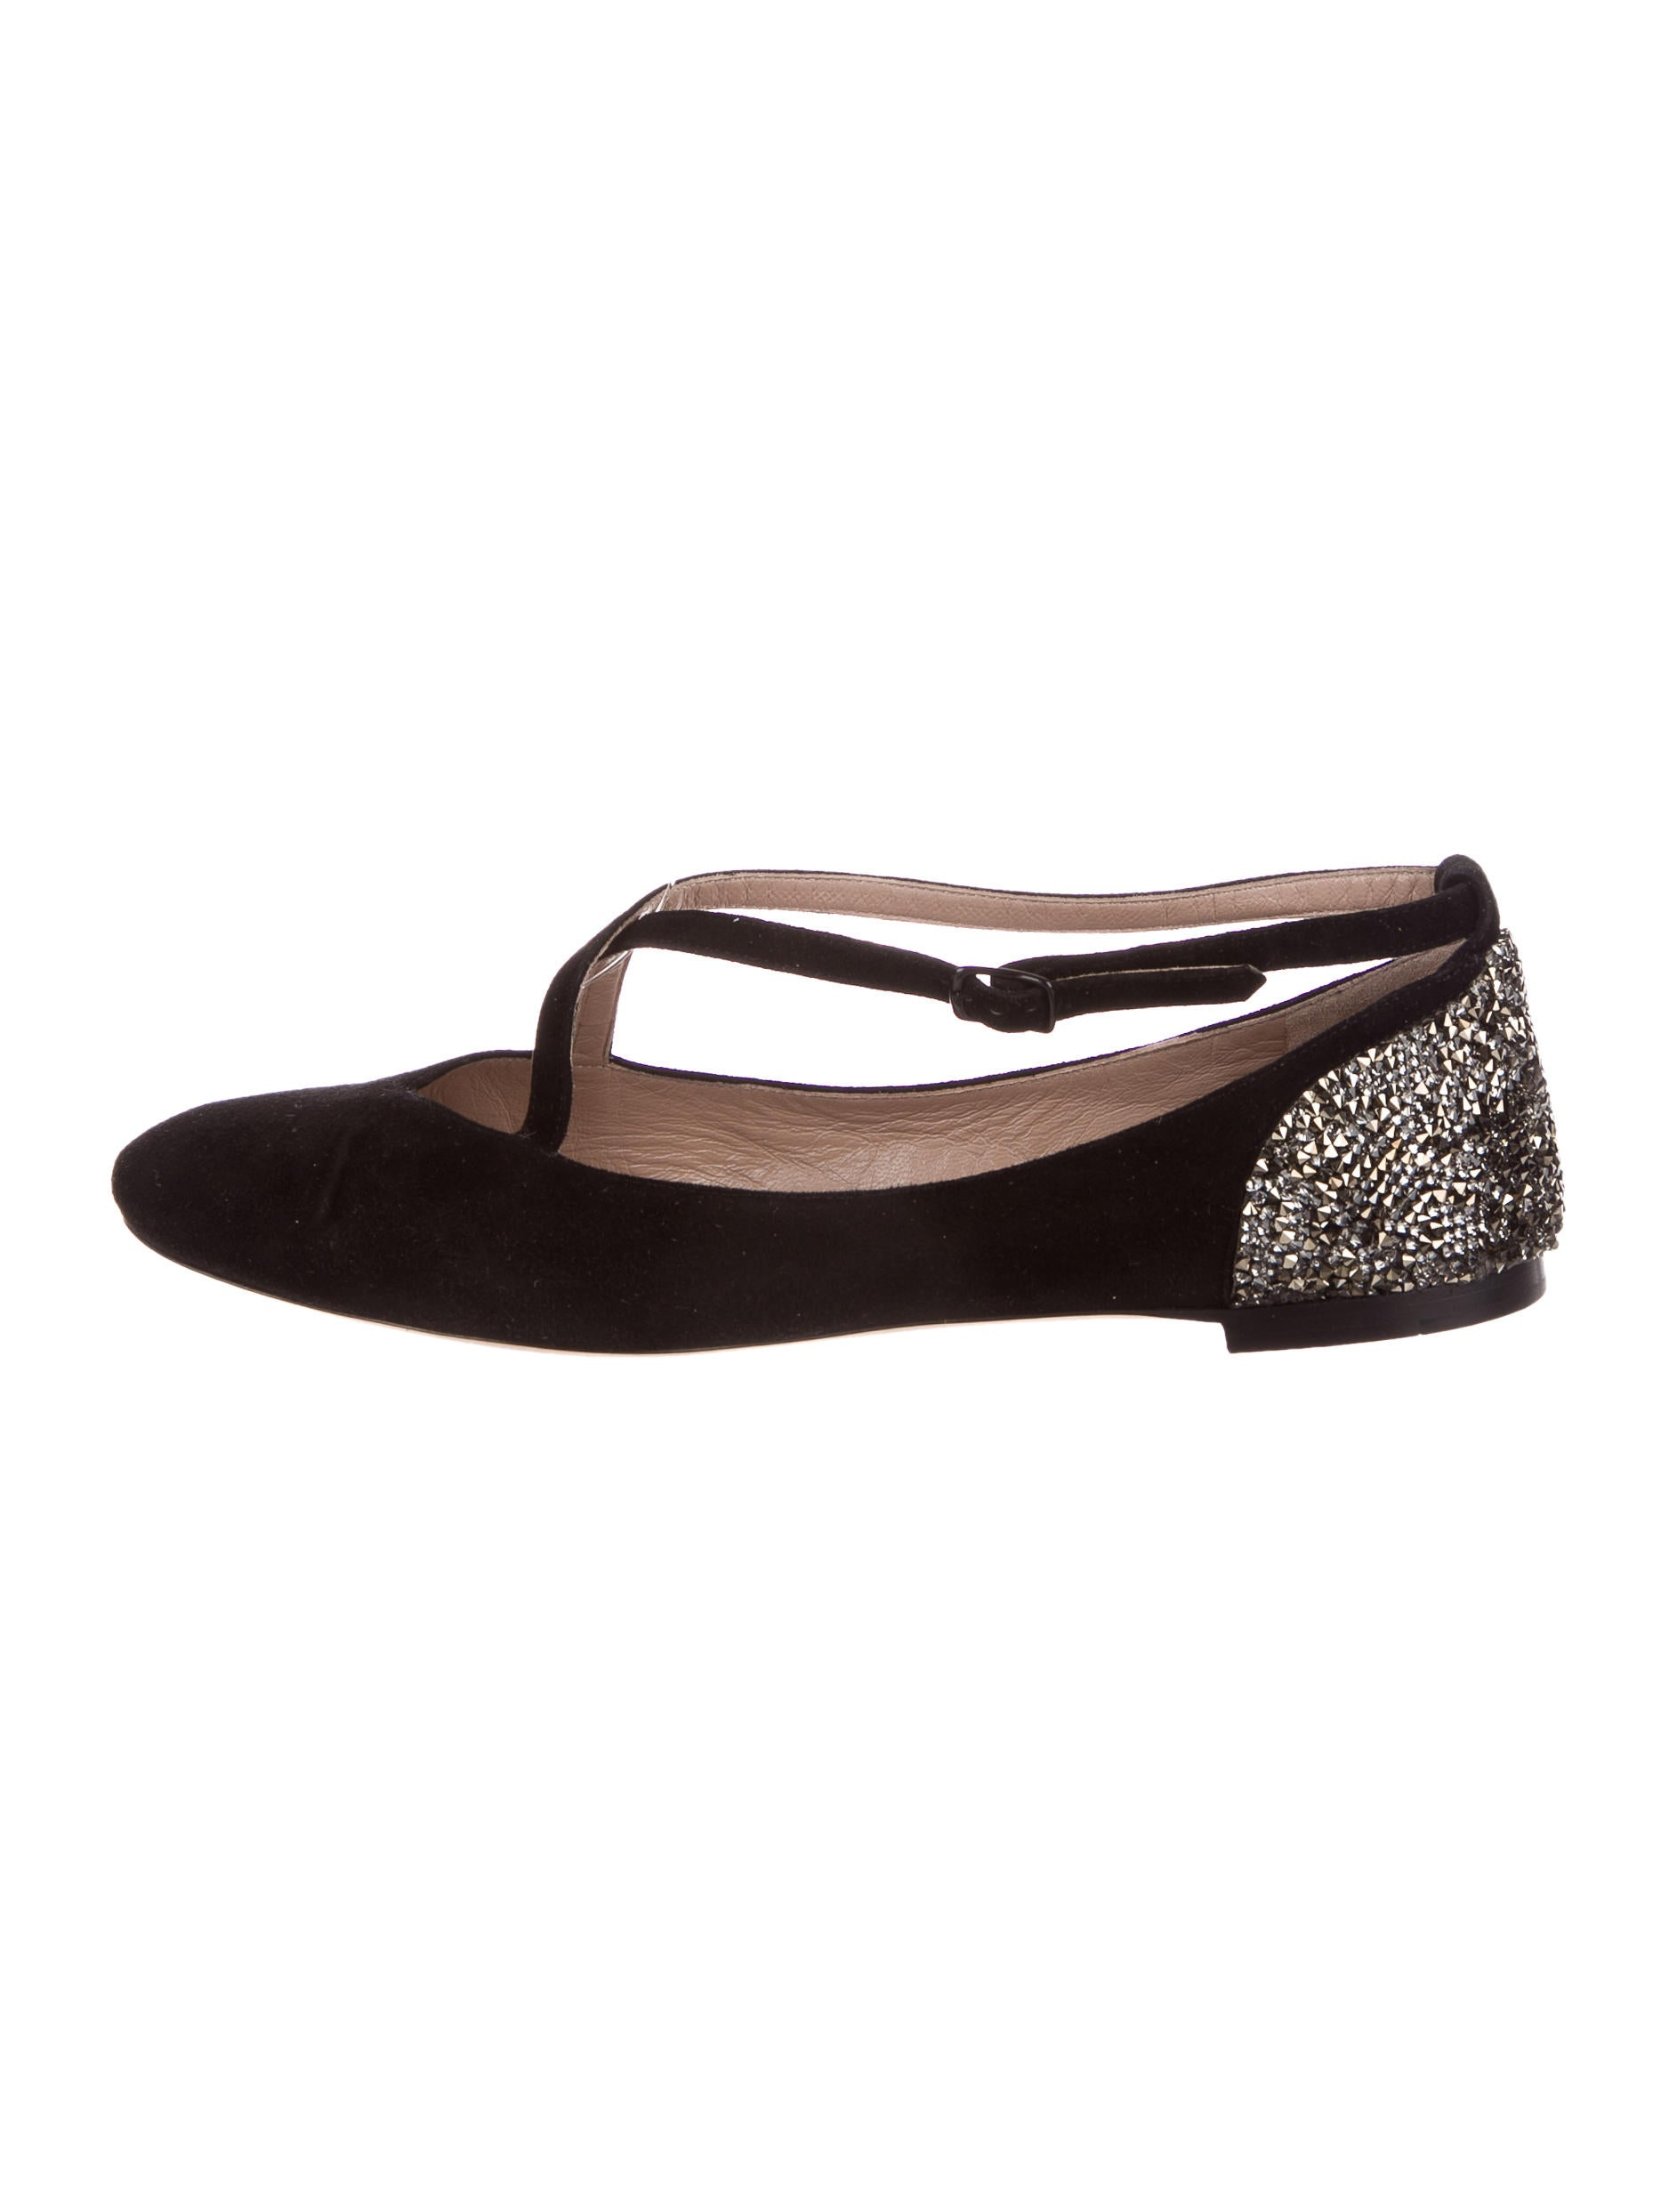 sale deals free shipping 2015 Chloé Strass-Embellished Suede Flats Cheapest cheap online outlet cheap authentic Inexpensive online yJJiJTNB